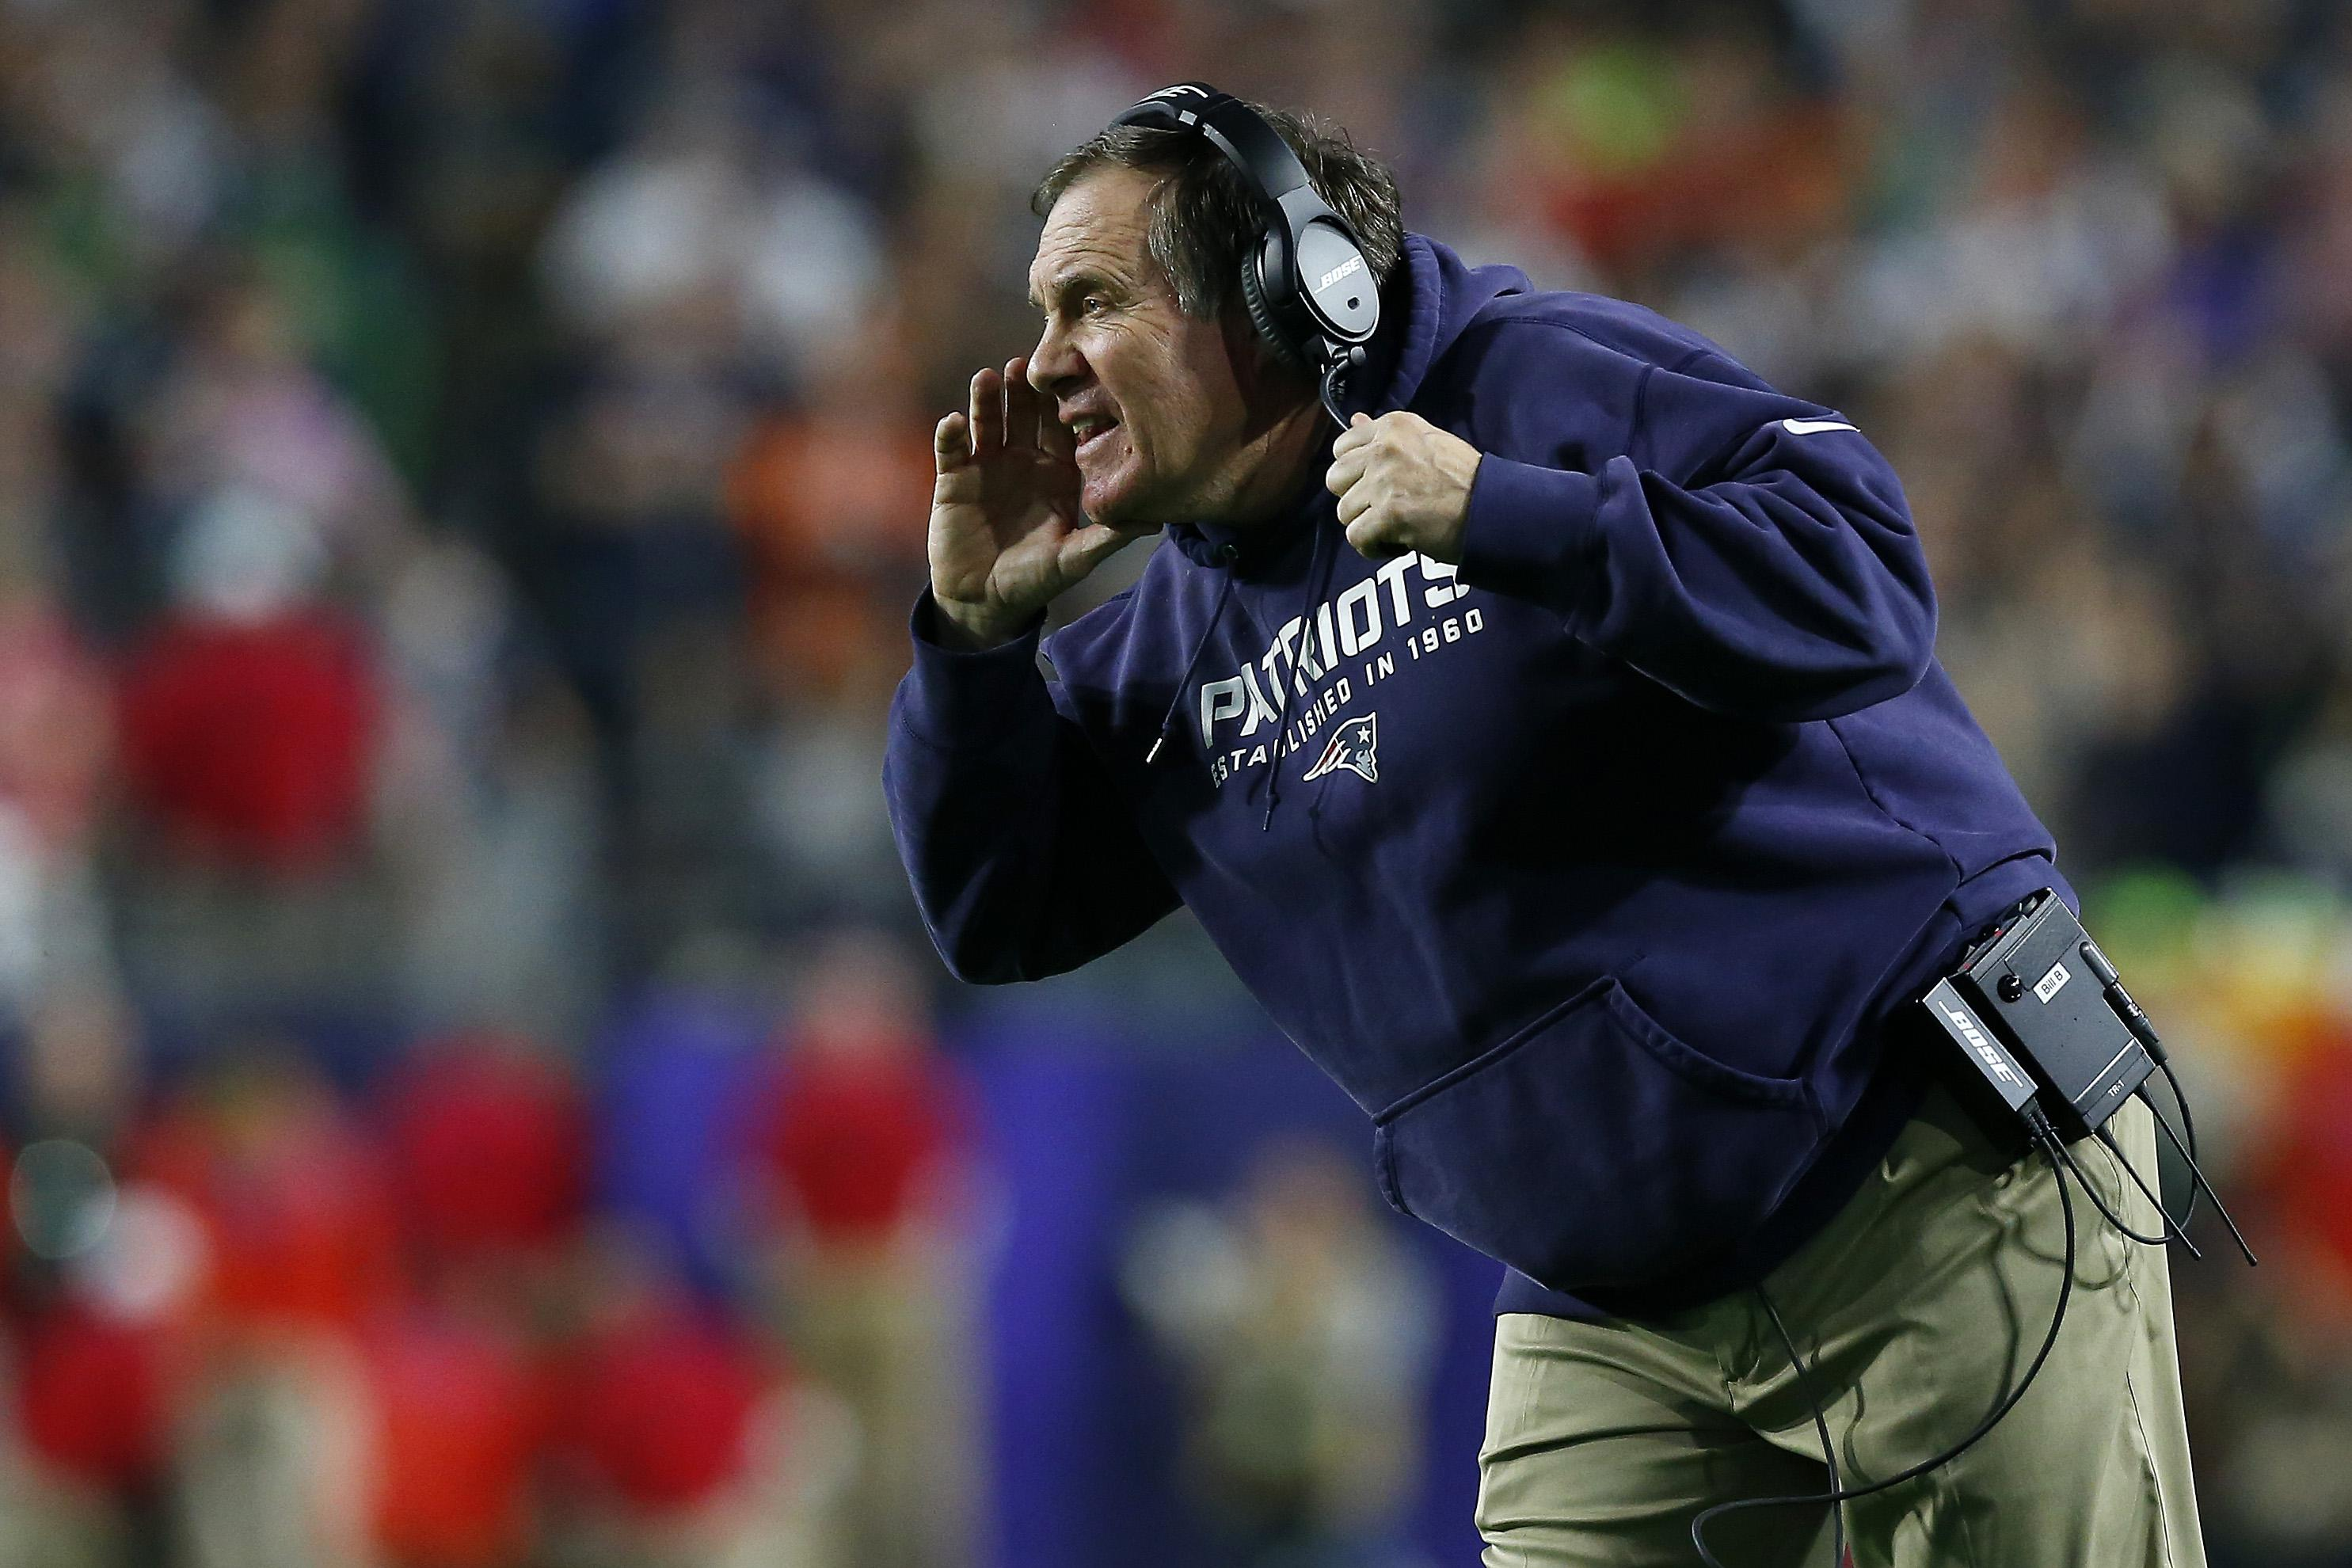 GLENDALE, AZ - FEBRUARY 01:  Head coach Bill Belichick of the New England Patriots reacts during Super Bowl XLIX against the Seattle Seahawks at University of Phoenix Stadium on February 1, 2015 in Glendale, Arizona.  (Photo by Tom Pennington/Getty Images)